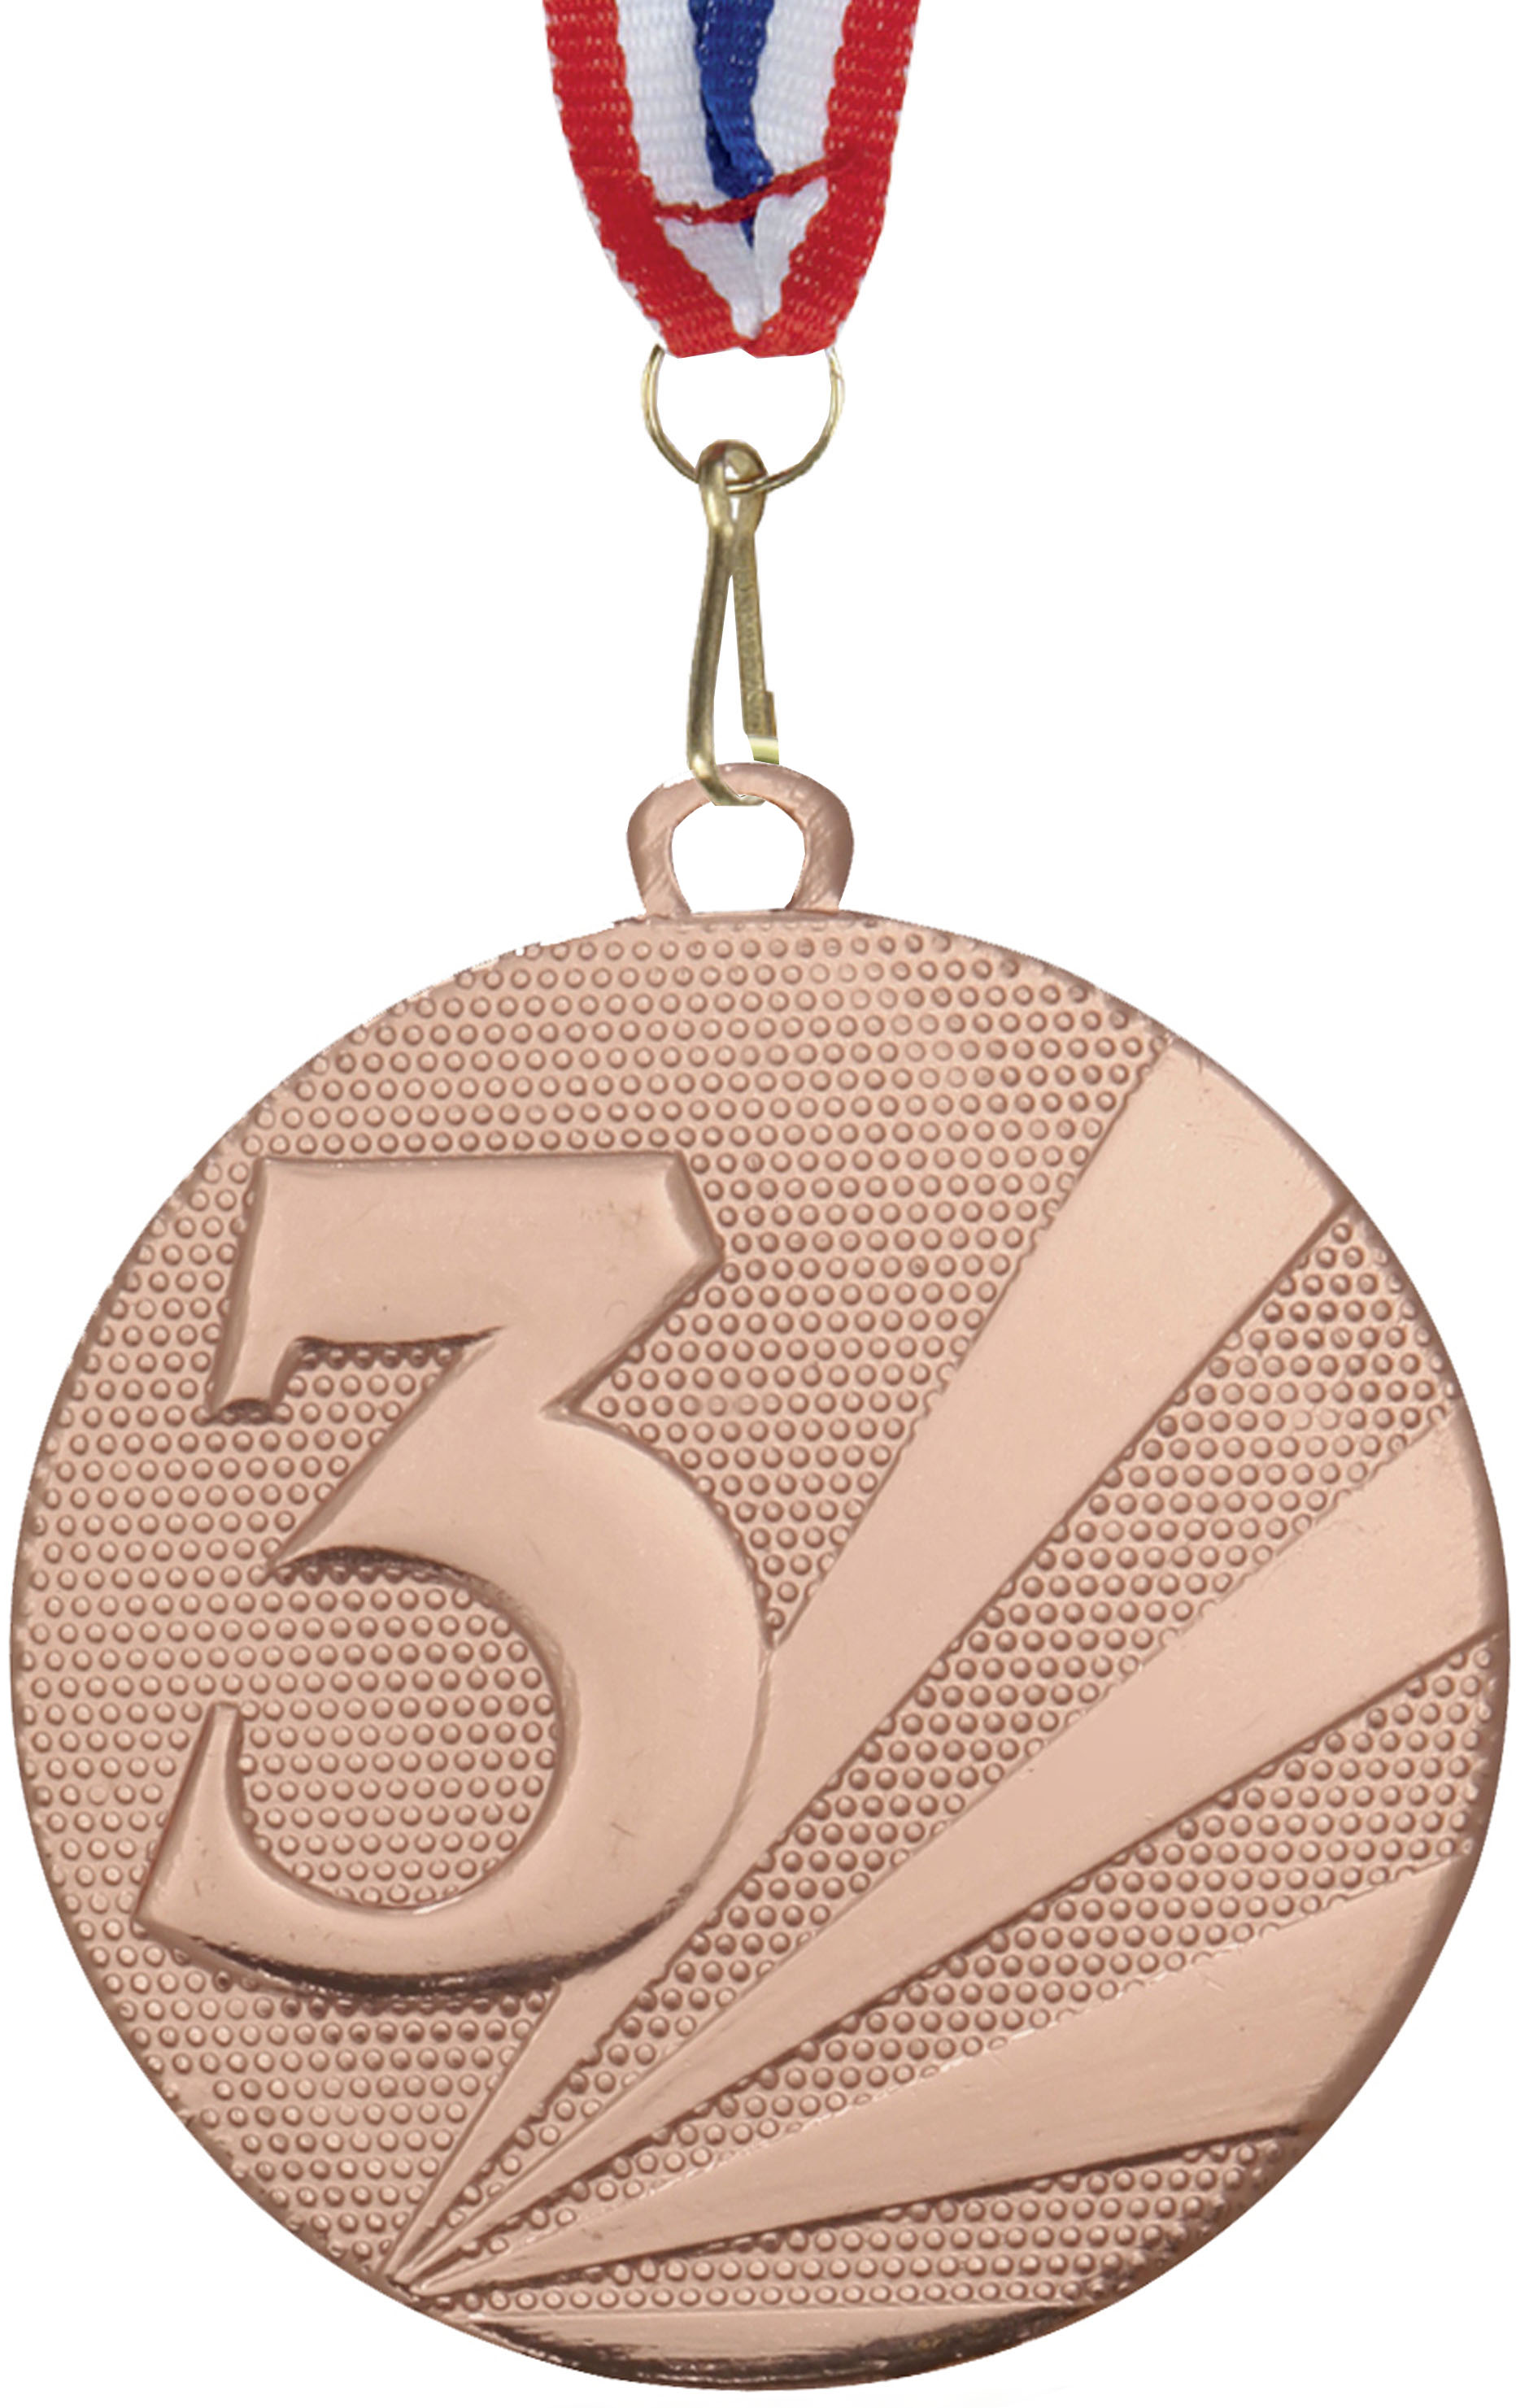 Free P&p Sporting Goods Other Sporting Goods Dance Medal With Free Ribbons